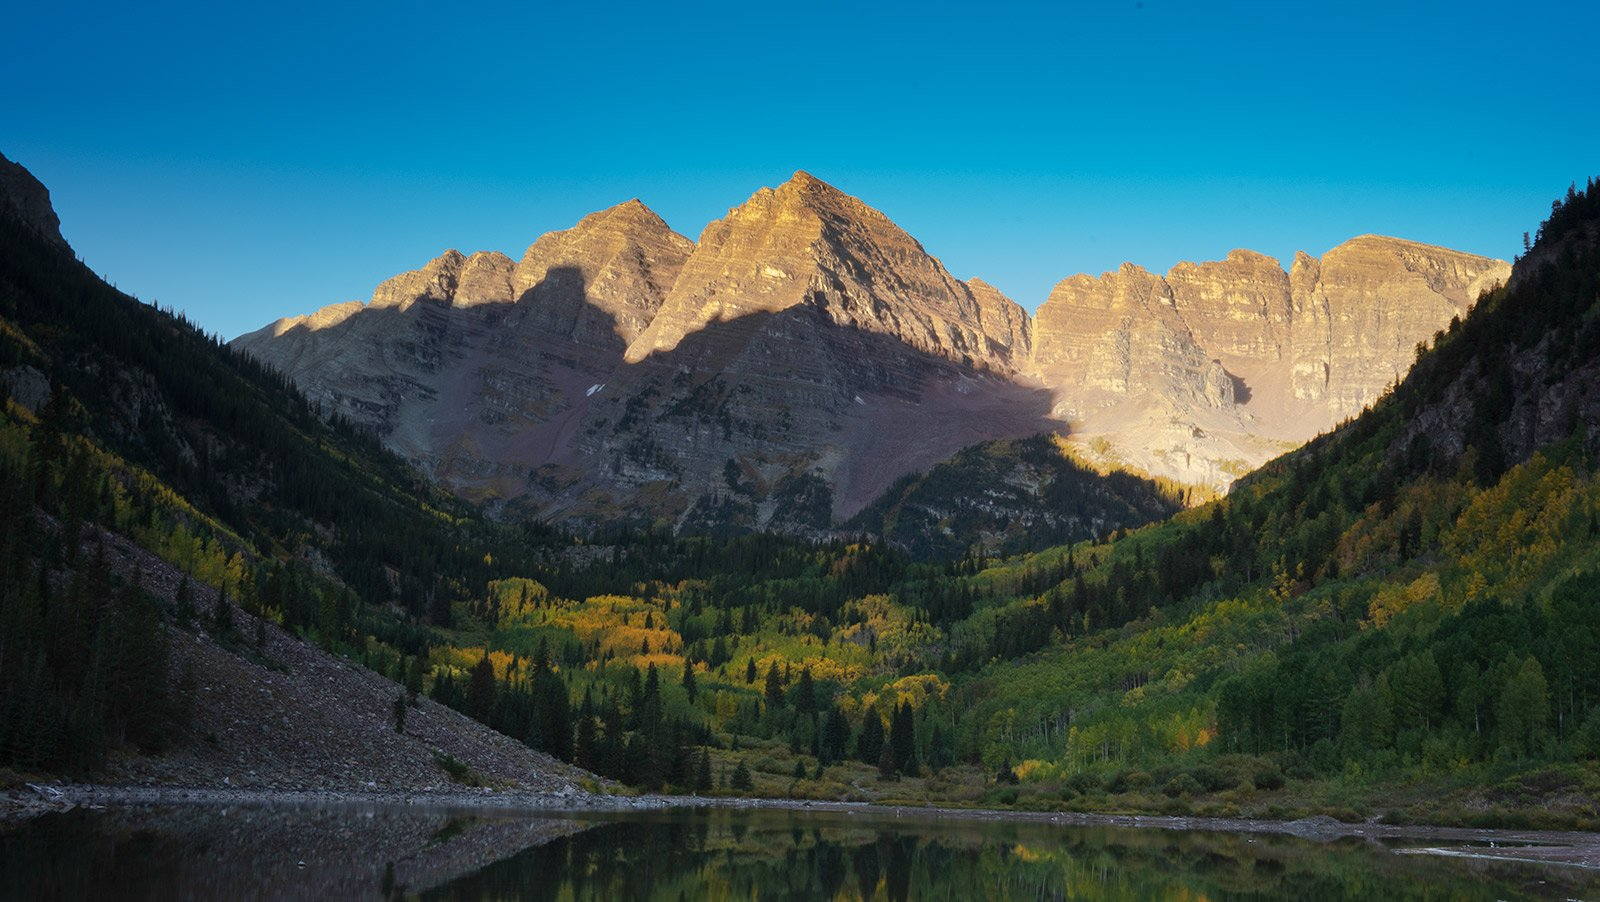 Maroon Bells captured at sunrise during the warm summer months. It's crazy to think this is one of the most photographed mountains in Colorado, but I understand why. Maroon Bells also offers a small space for elopements, and is the perfect spot if you want these majestic mountains in the background for your photos.